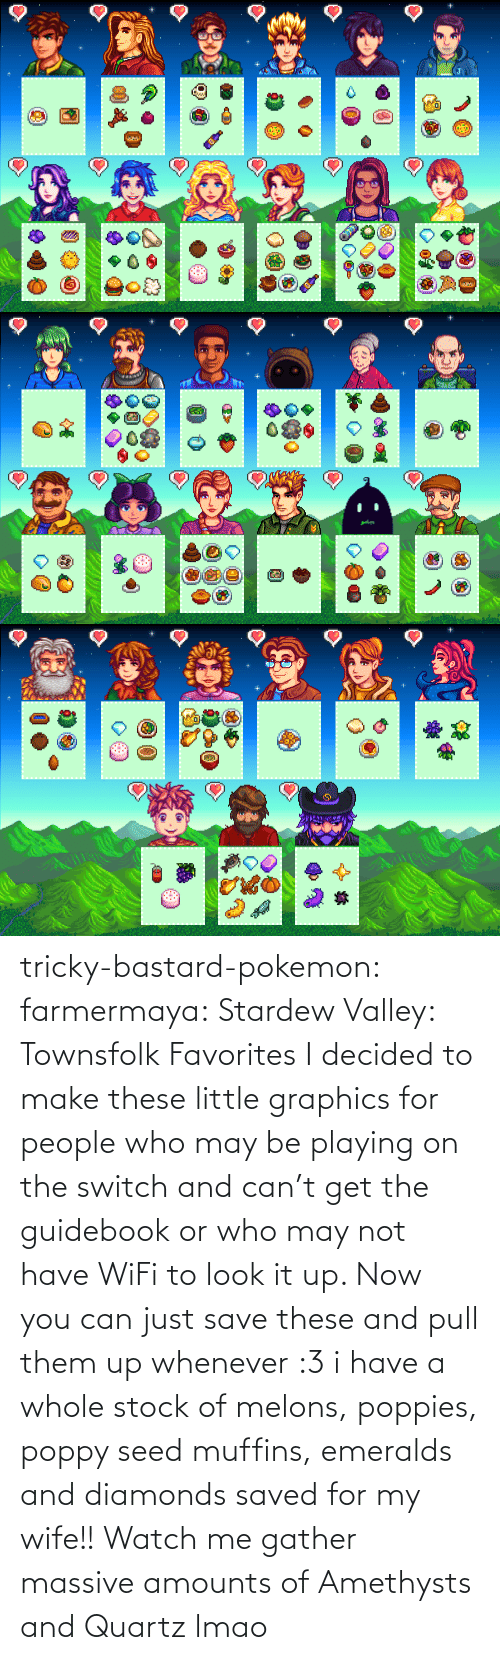 muffins: tricky-bastard-pokemon:  farmermaya: Stardew Valley: Townsfolk Favorites  I decided to make these little graphics for people who may be playing on the switch and can't get the guidebook or who may not have WiFi to look it up. Now you can just save these and pull them up whenever :3   i have a whole stock of melons, poppies, poppy seed muffins, emeralds and diamonds saved for my wife!!    Watch me gather massive amounts of Amethysts and Quartz lmao